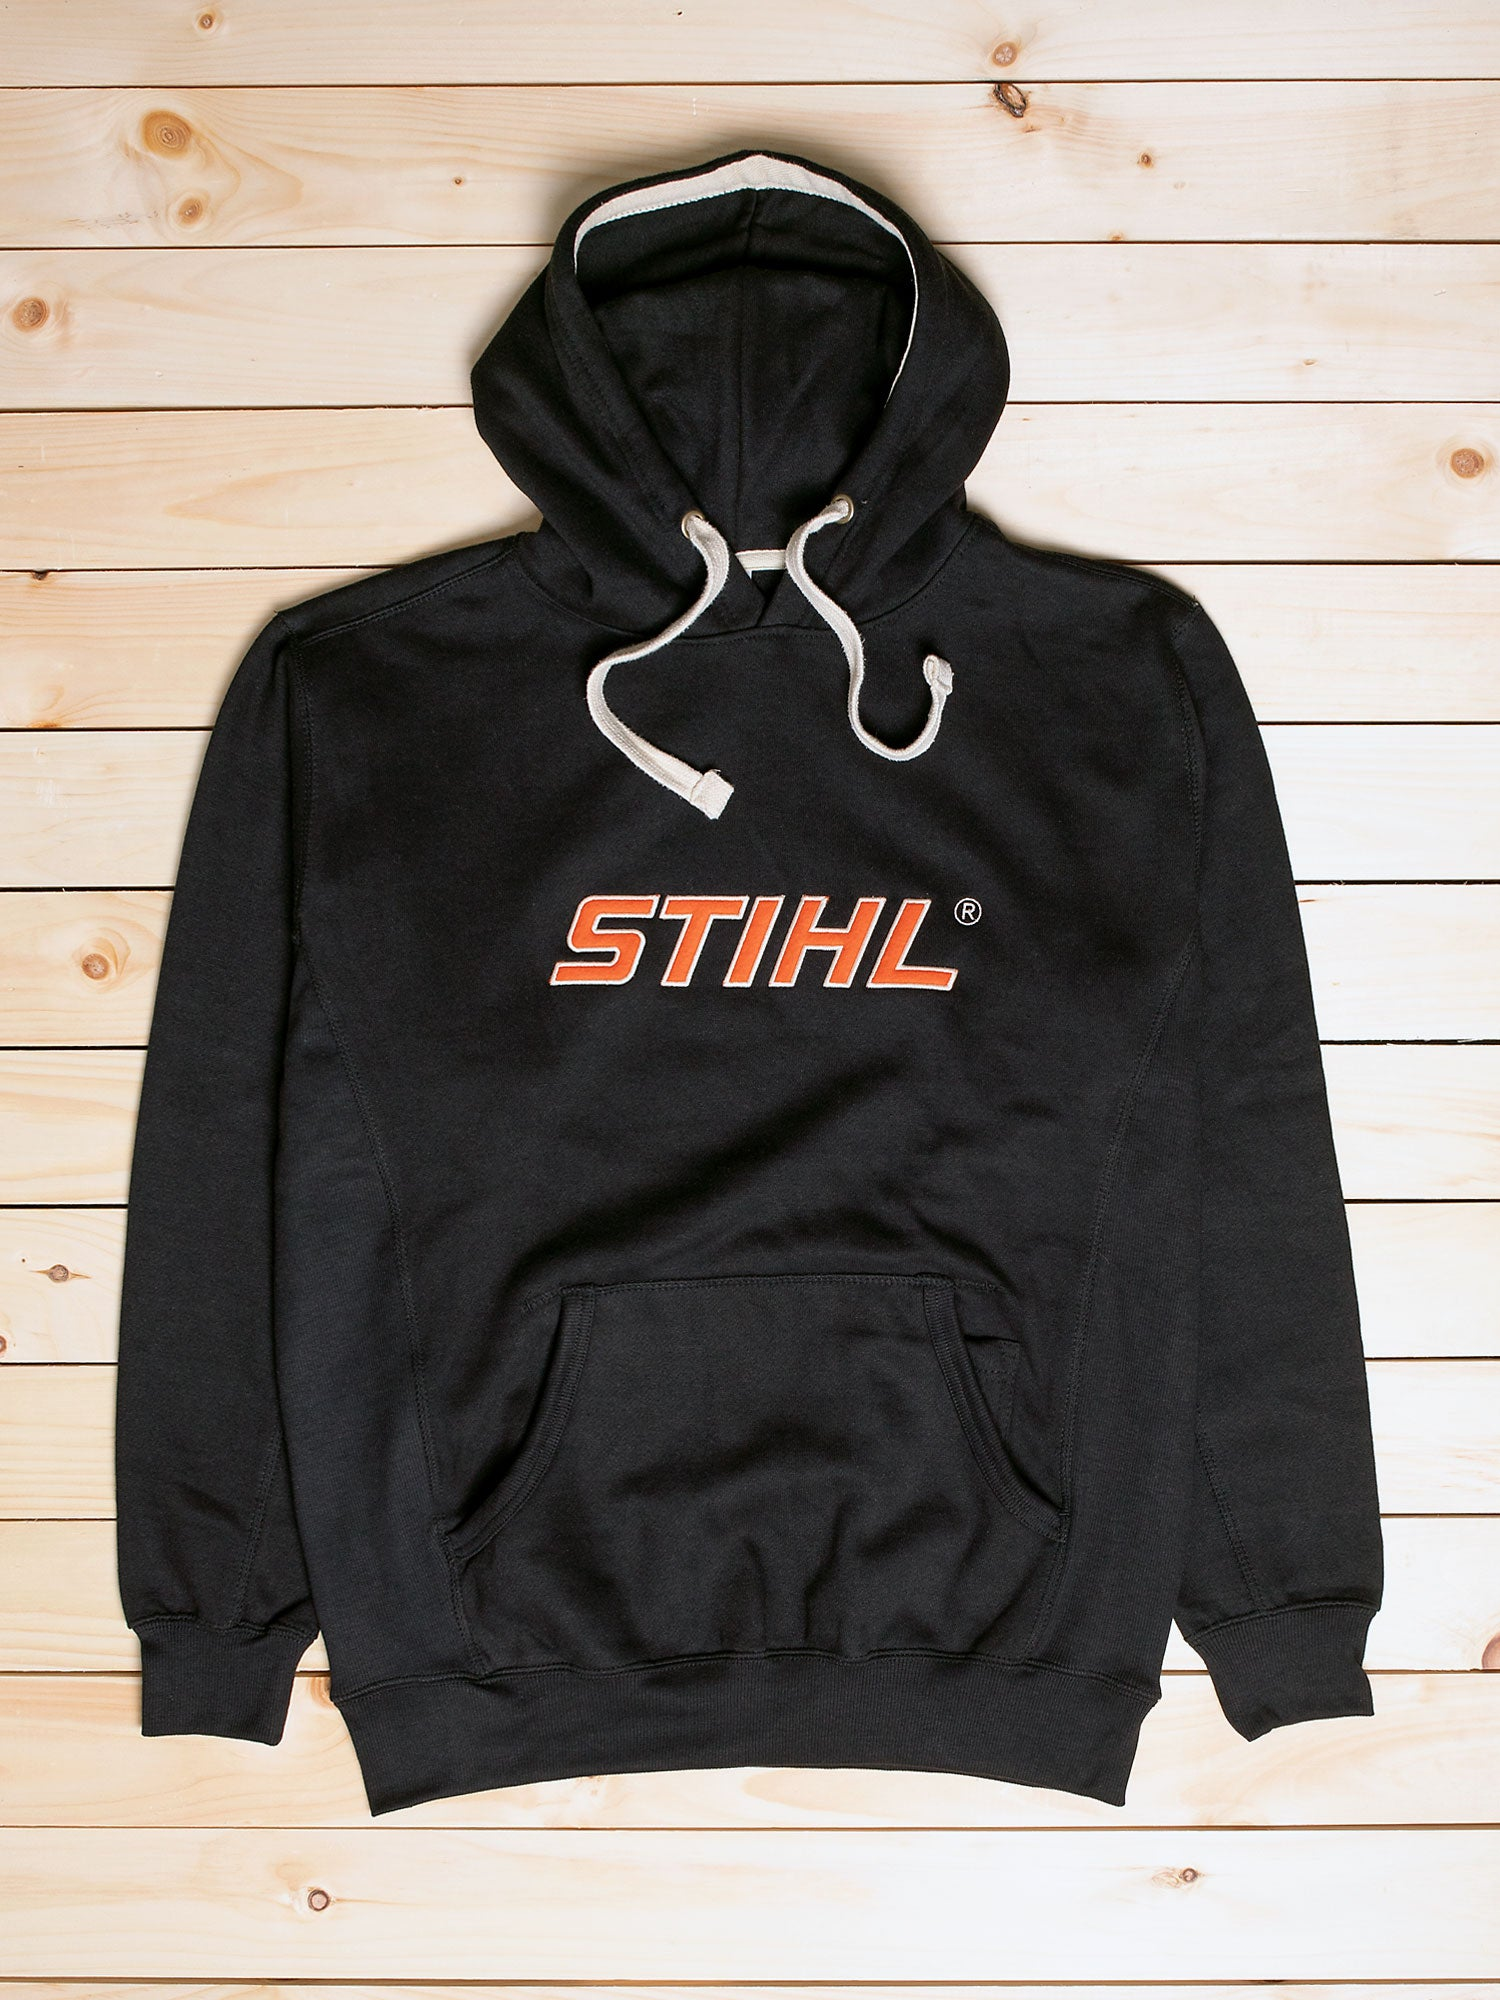 STIHL Super Heavyweight Hooded Sweatshirt - wholesale